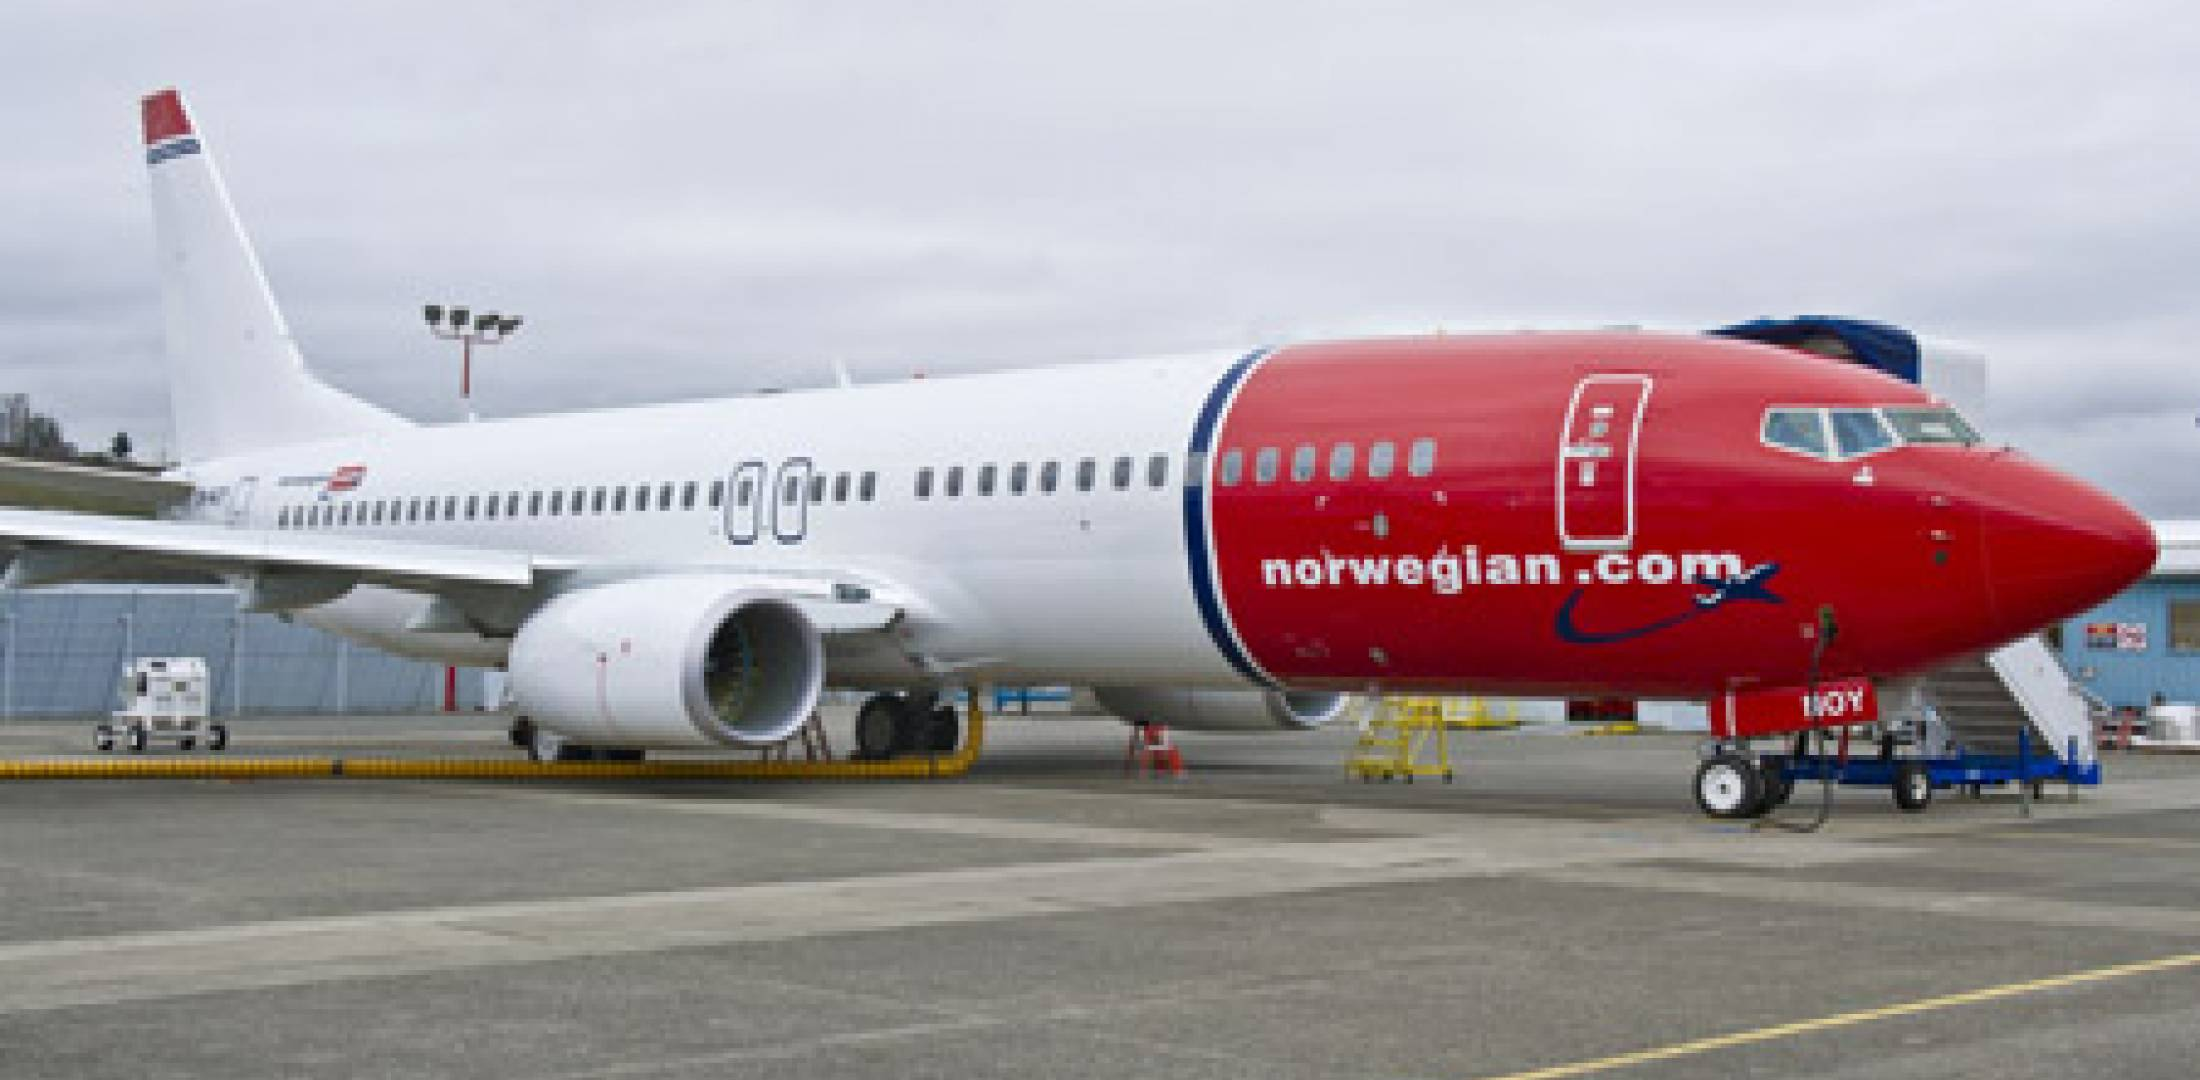 Norwegian Air Shuttle 737